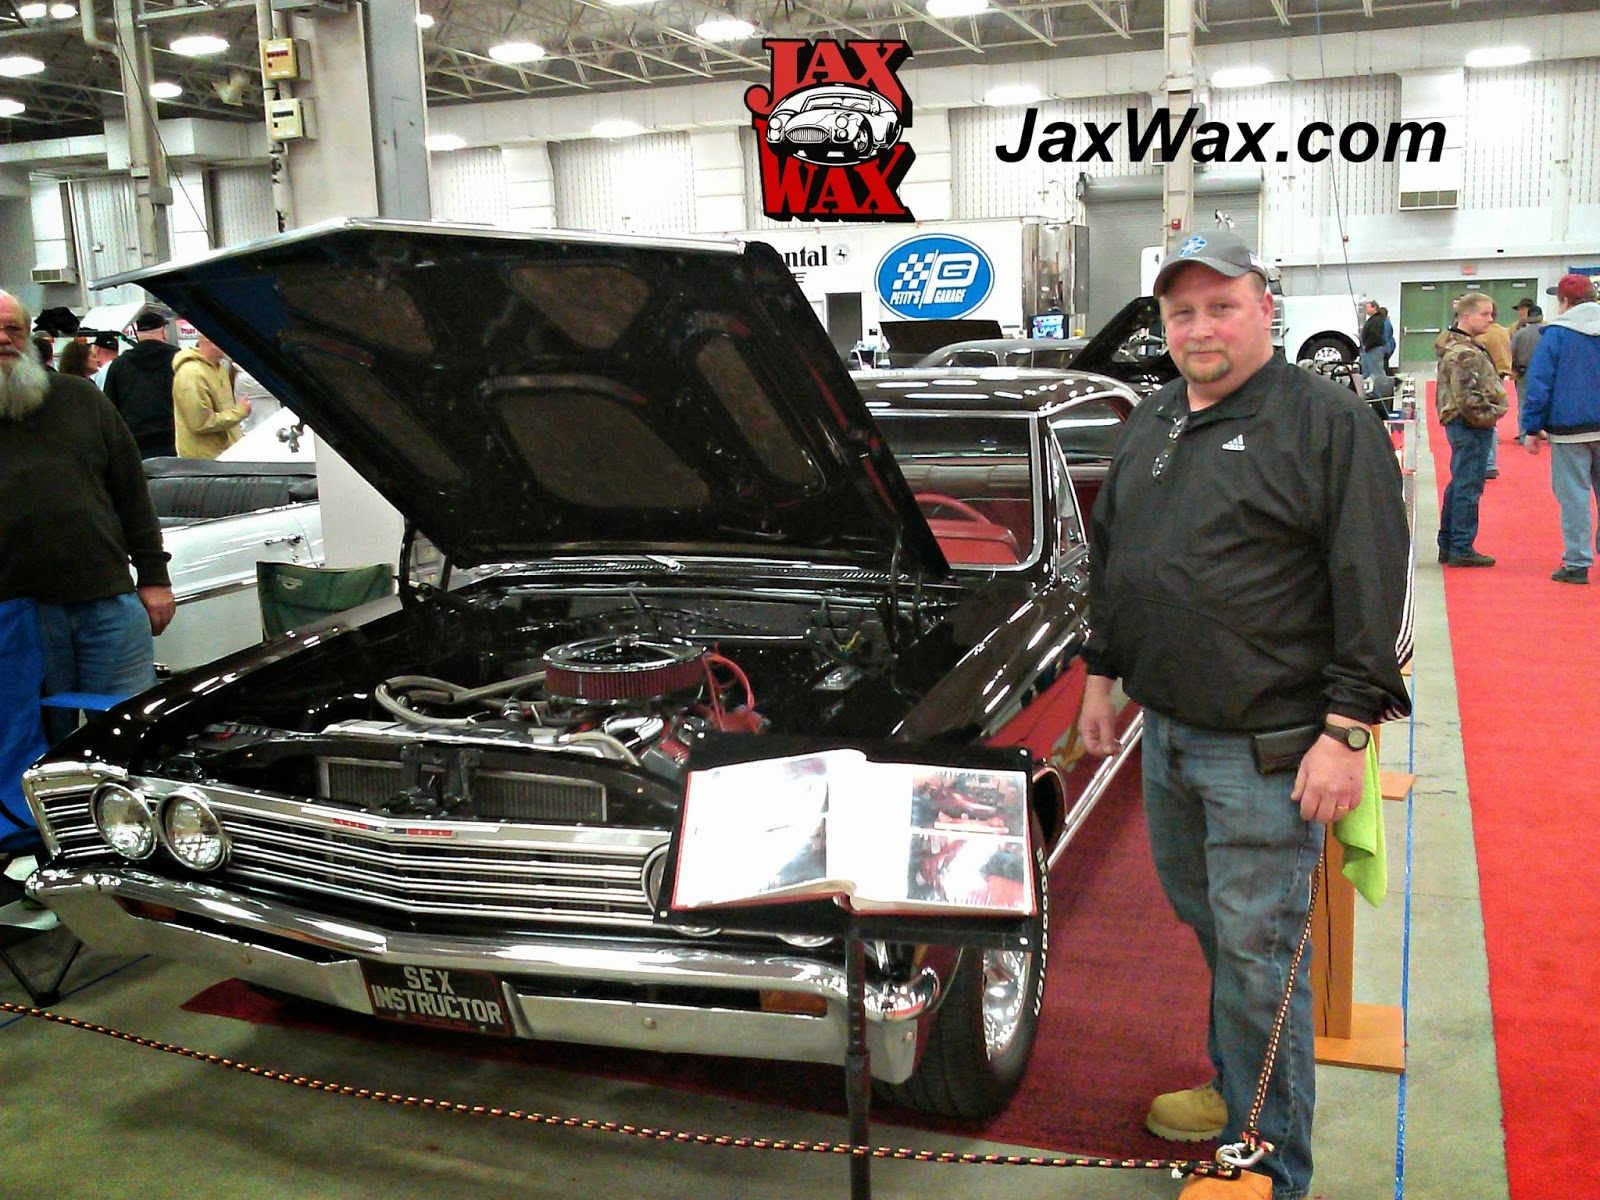 1967 Chevy Malibu Indianapolis World of Wheels Jax Wax Customer